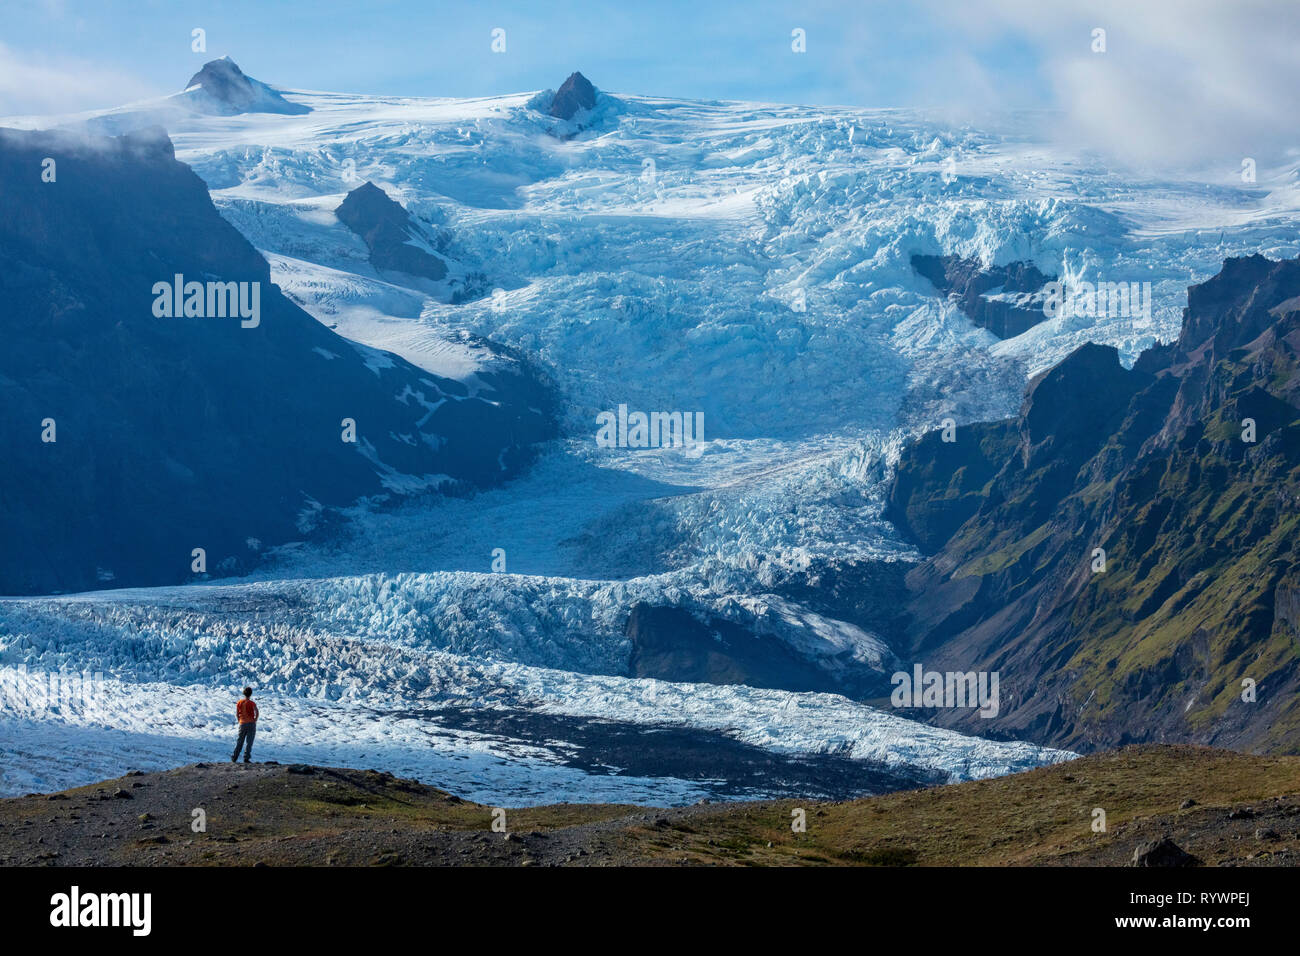 Person dwarfed by the ice fall of Kviarjokull glacier. Vatnajokull ice cap, Sudhurland, south east Iceland. - Stock Image